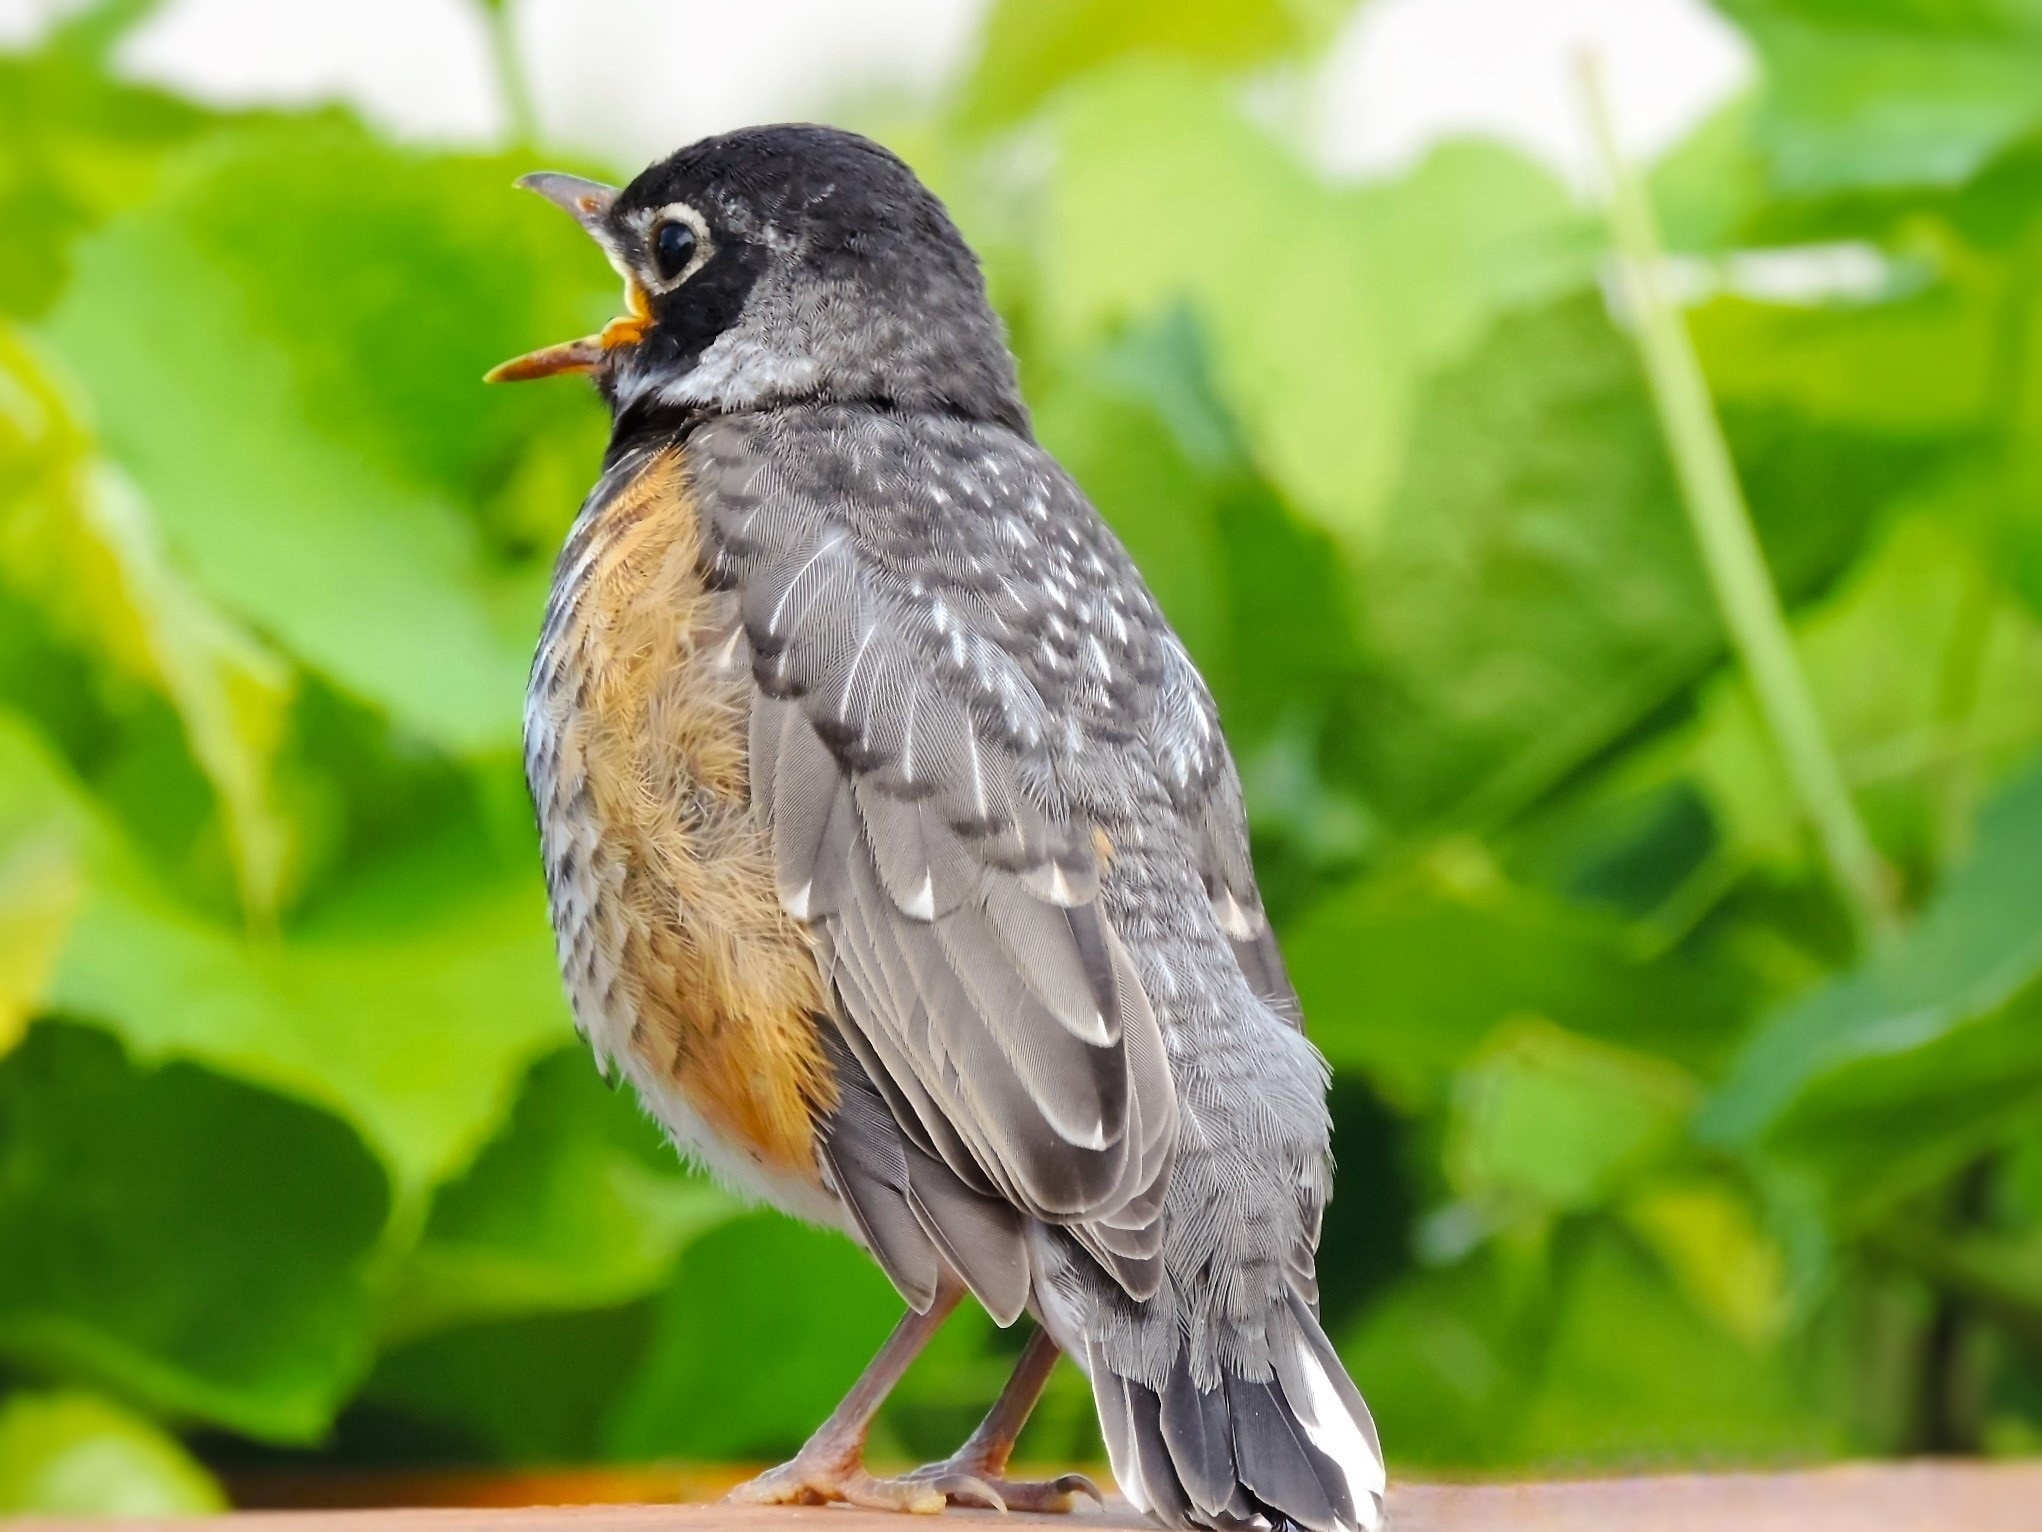 Young robin 2 by Tracey Tg Gergulich